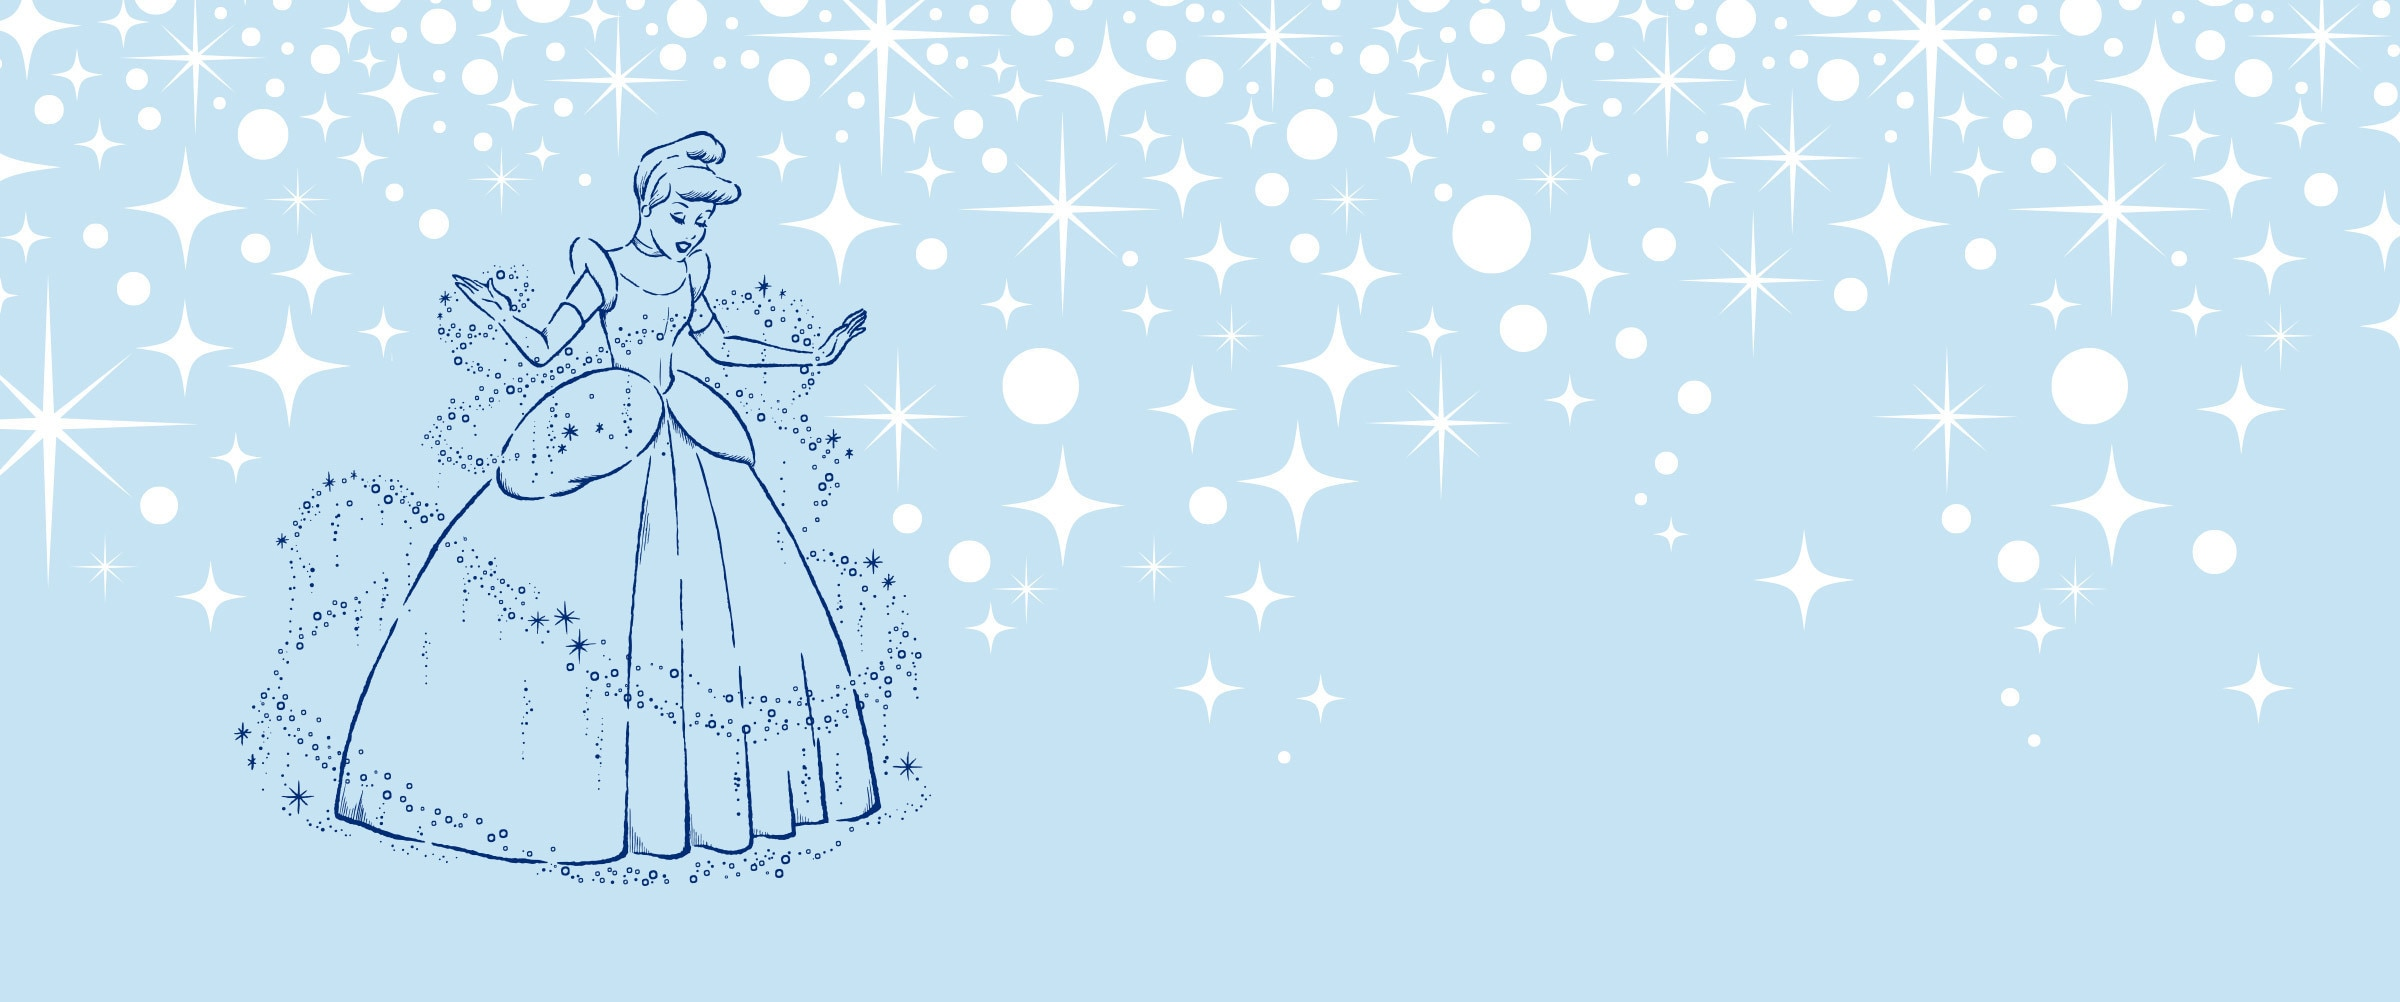 Princess page | Hero | Cinderella 70th Anniversary